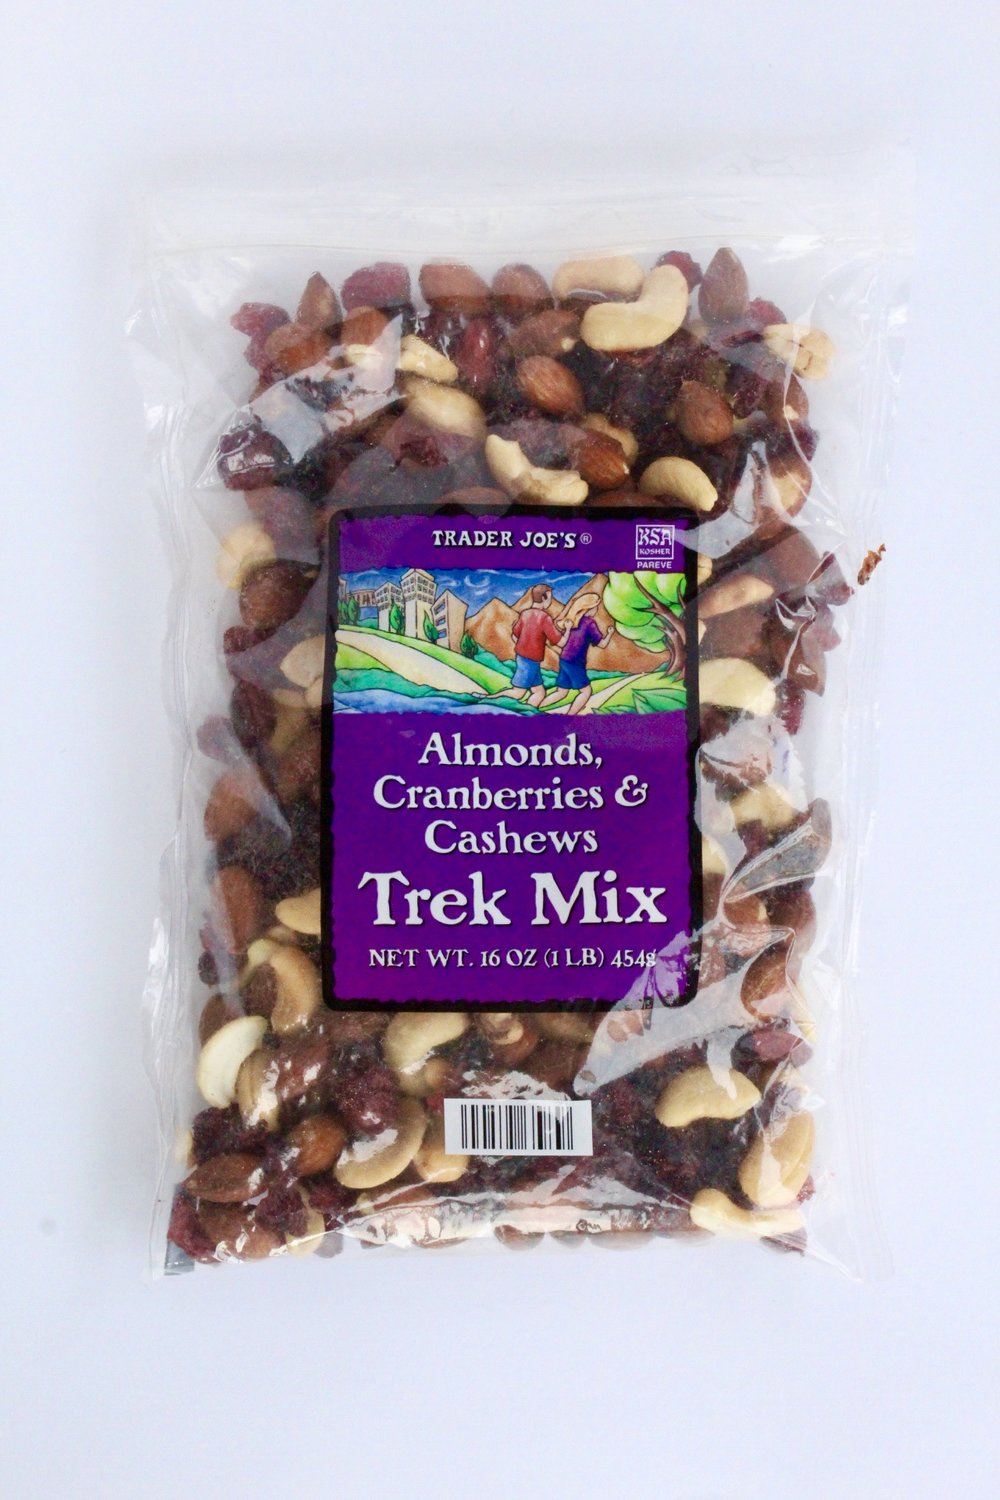 5. Trail Mix - I love the wide variety of trail mixes and dried fruit they have. I like the Omega-3 Trek mix, along with this cashew, cranberry, almond for snacks on the road when I'm traveling! As much as I love their selection of dried mango, apple slices, etc., a lot of them are loaded with added sugar – look for 'just fruit' listed on the label to make sure you're getting the unsweetened versions!